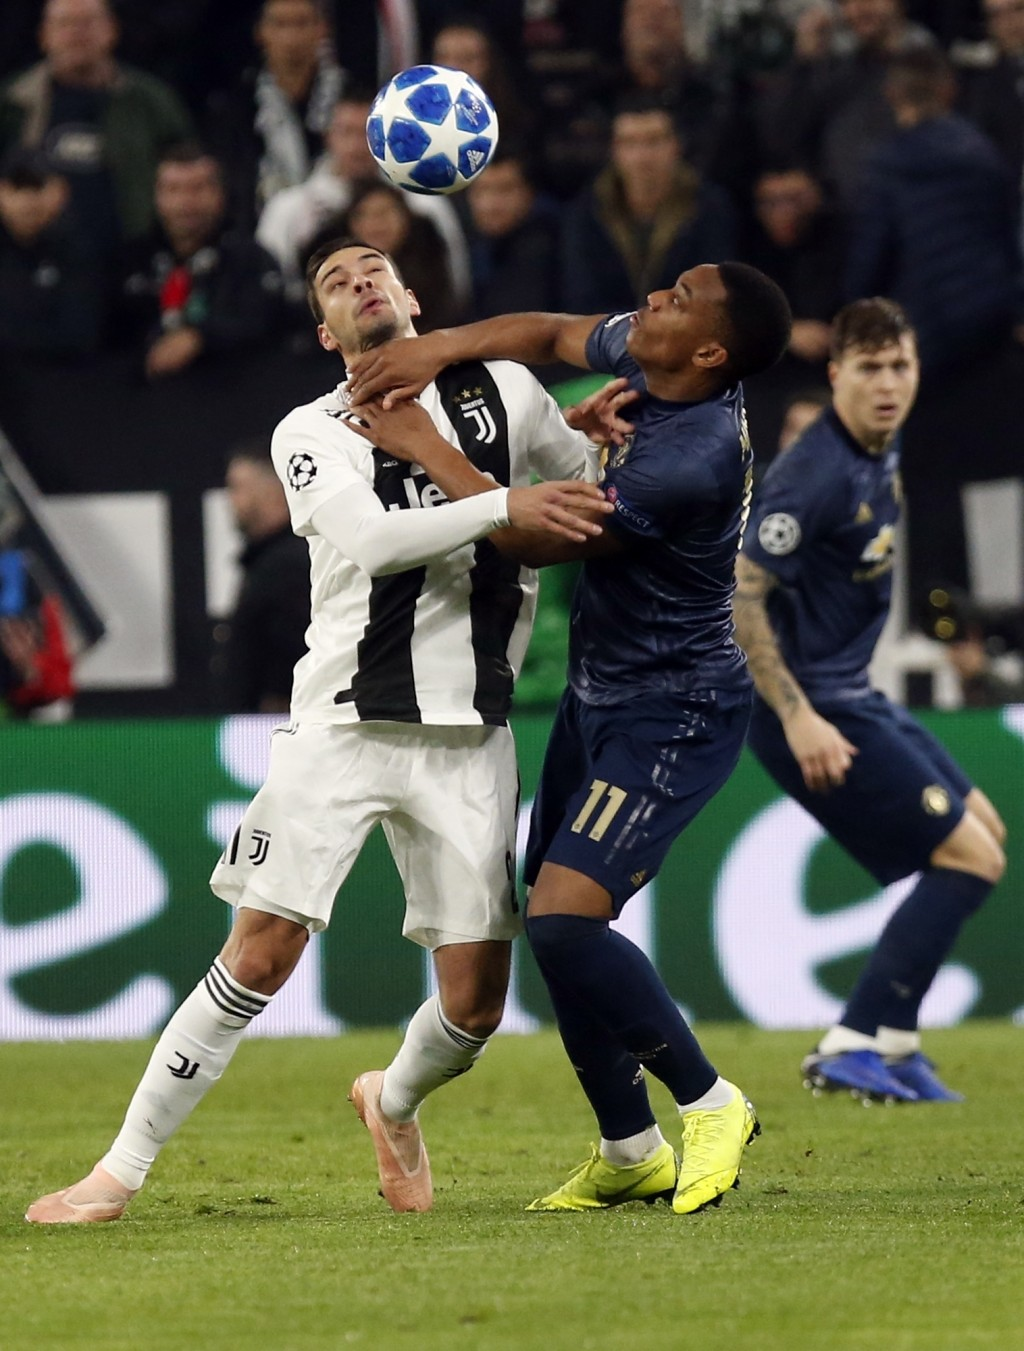 Juventus defender Mattia De Sciglio and ManU forward Anthony Martial, right, vie for the ball during the Champions League group H soccer match between